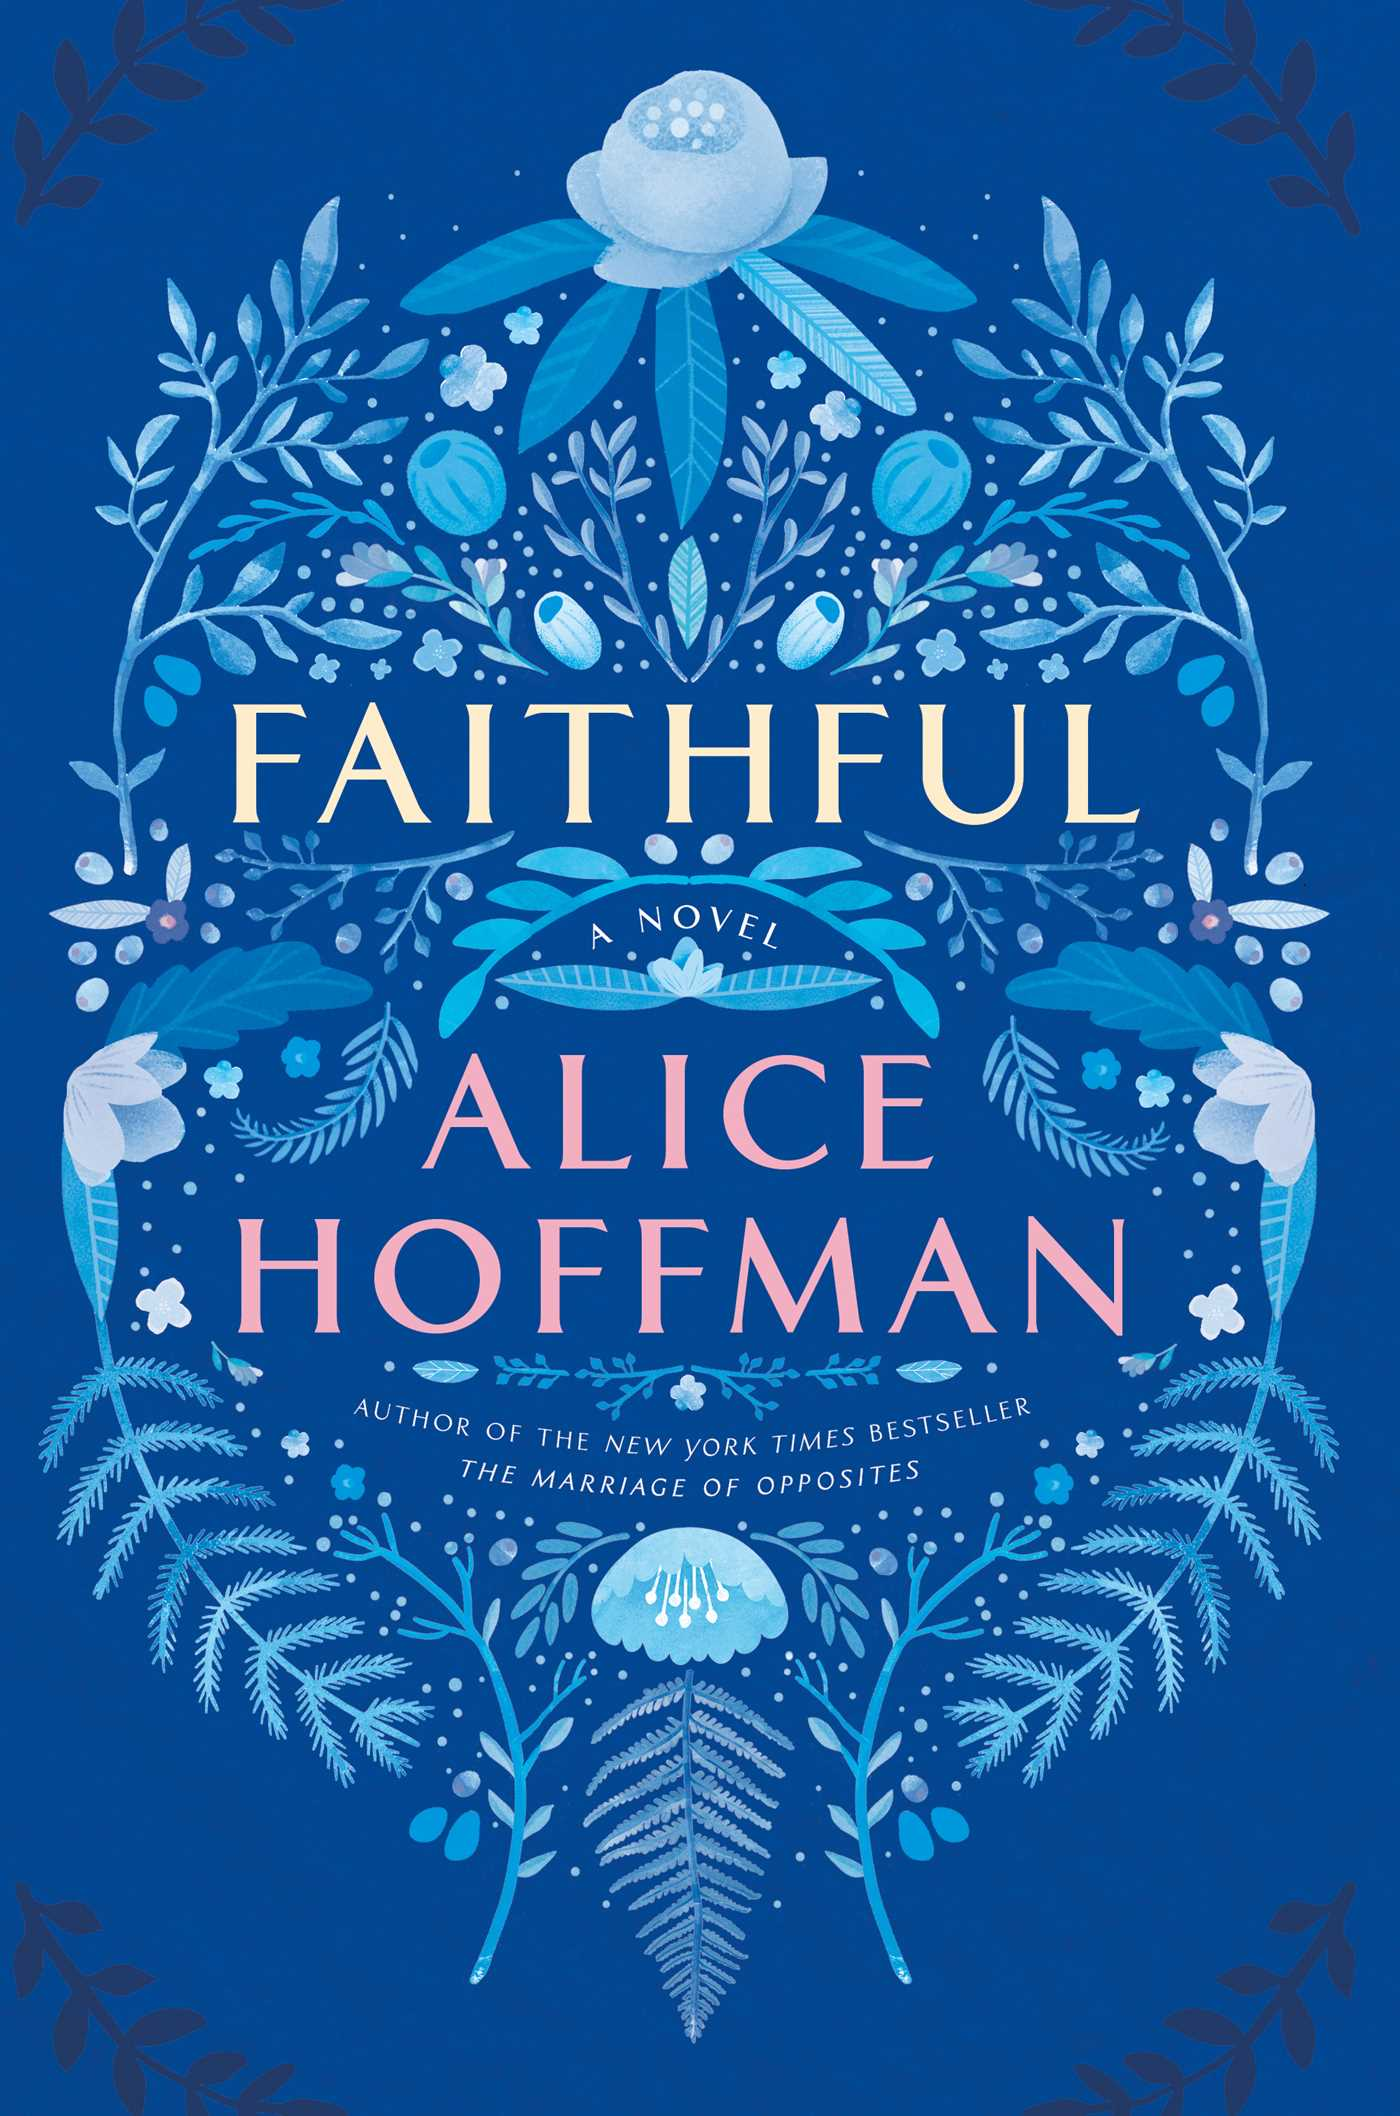 The Always Delightful Magic of Alice Hoffman